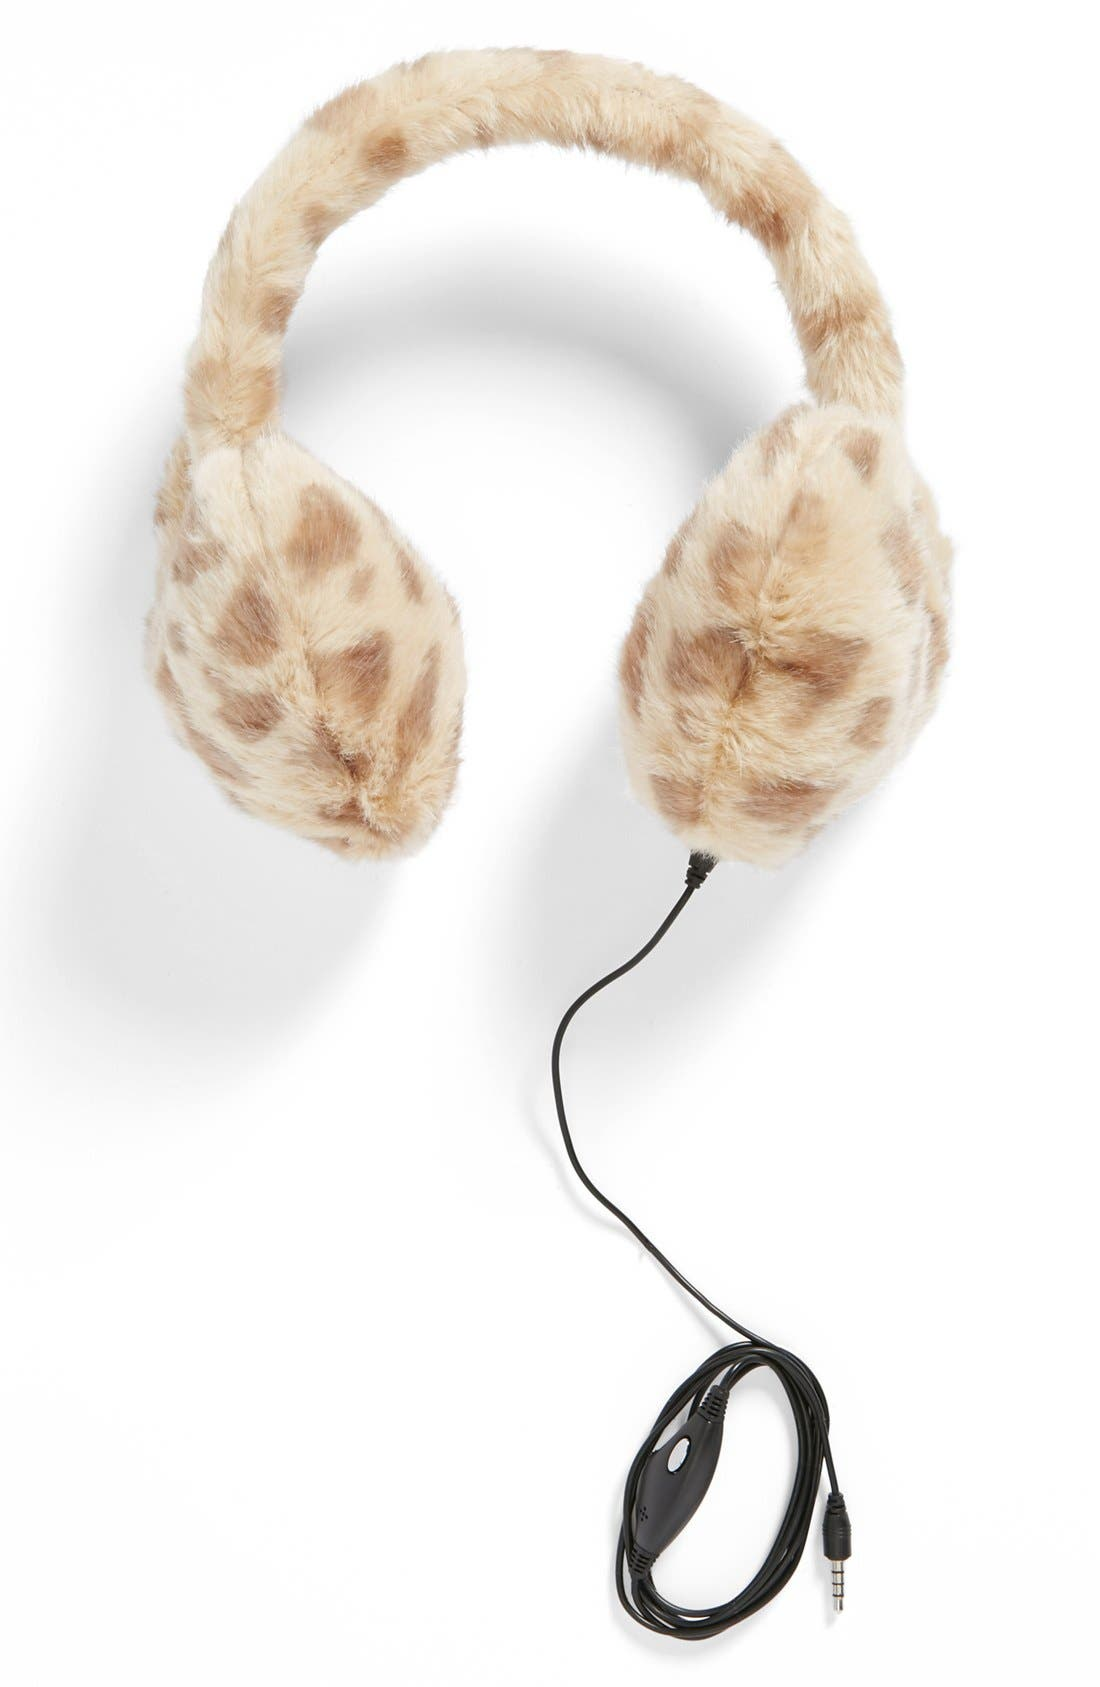 Alternate Image 1 Selected - The Accessory Collective Leopard Print Earmuff Headphones (Girls)